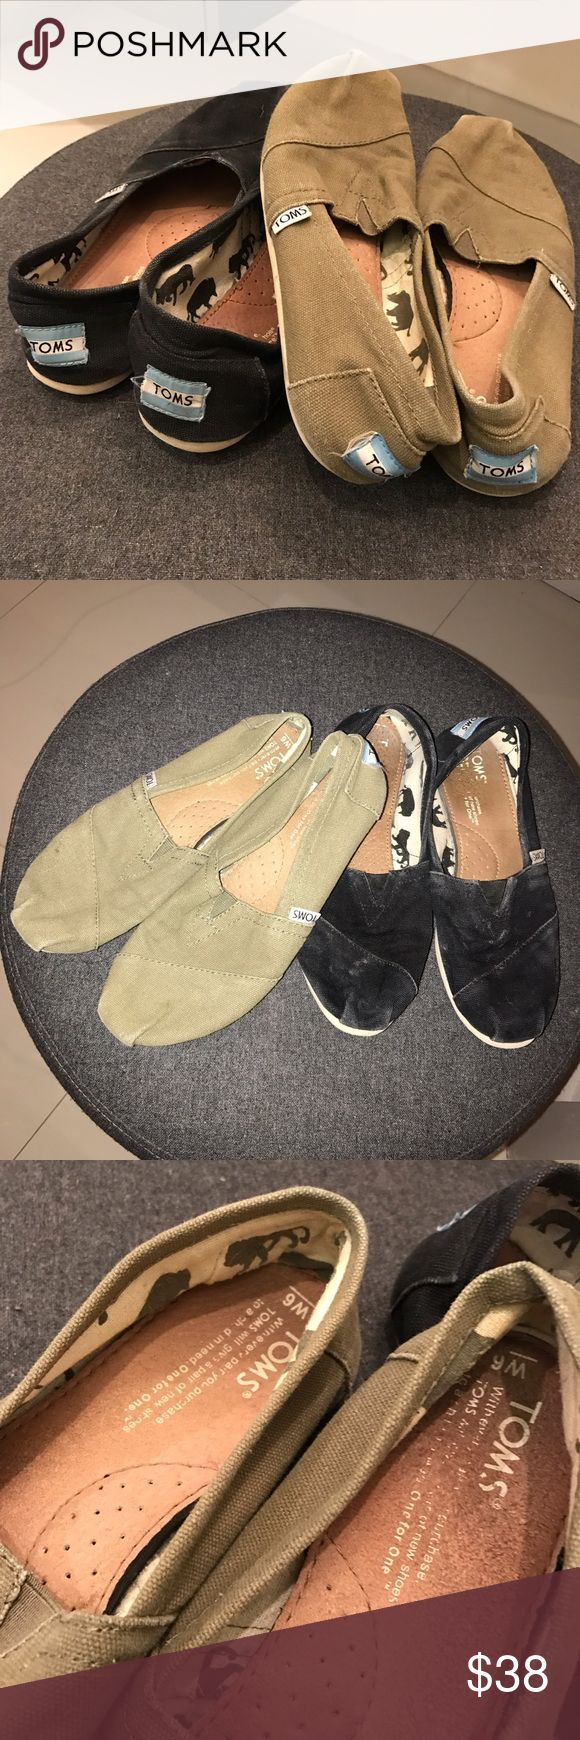 Original Black and Olive TOMS Slip On Flats